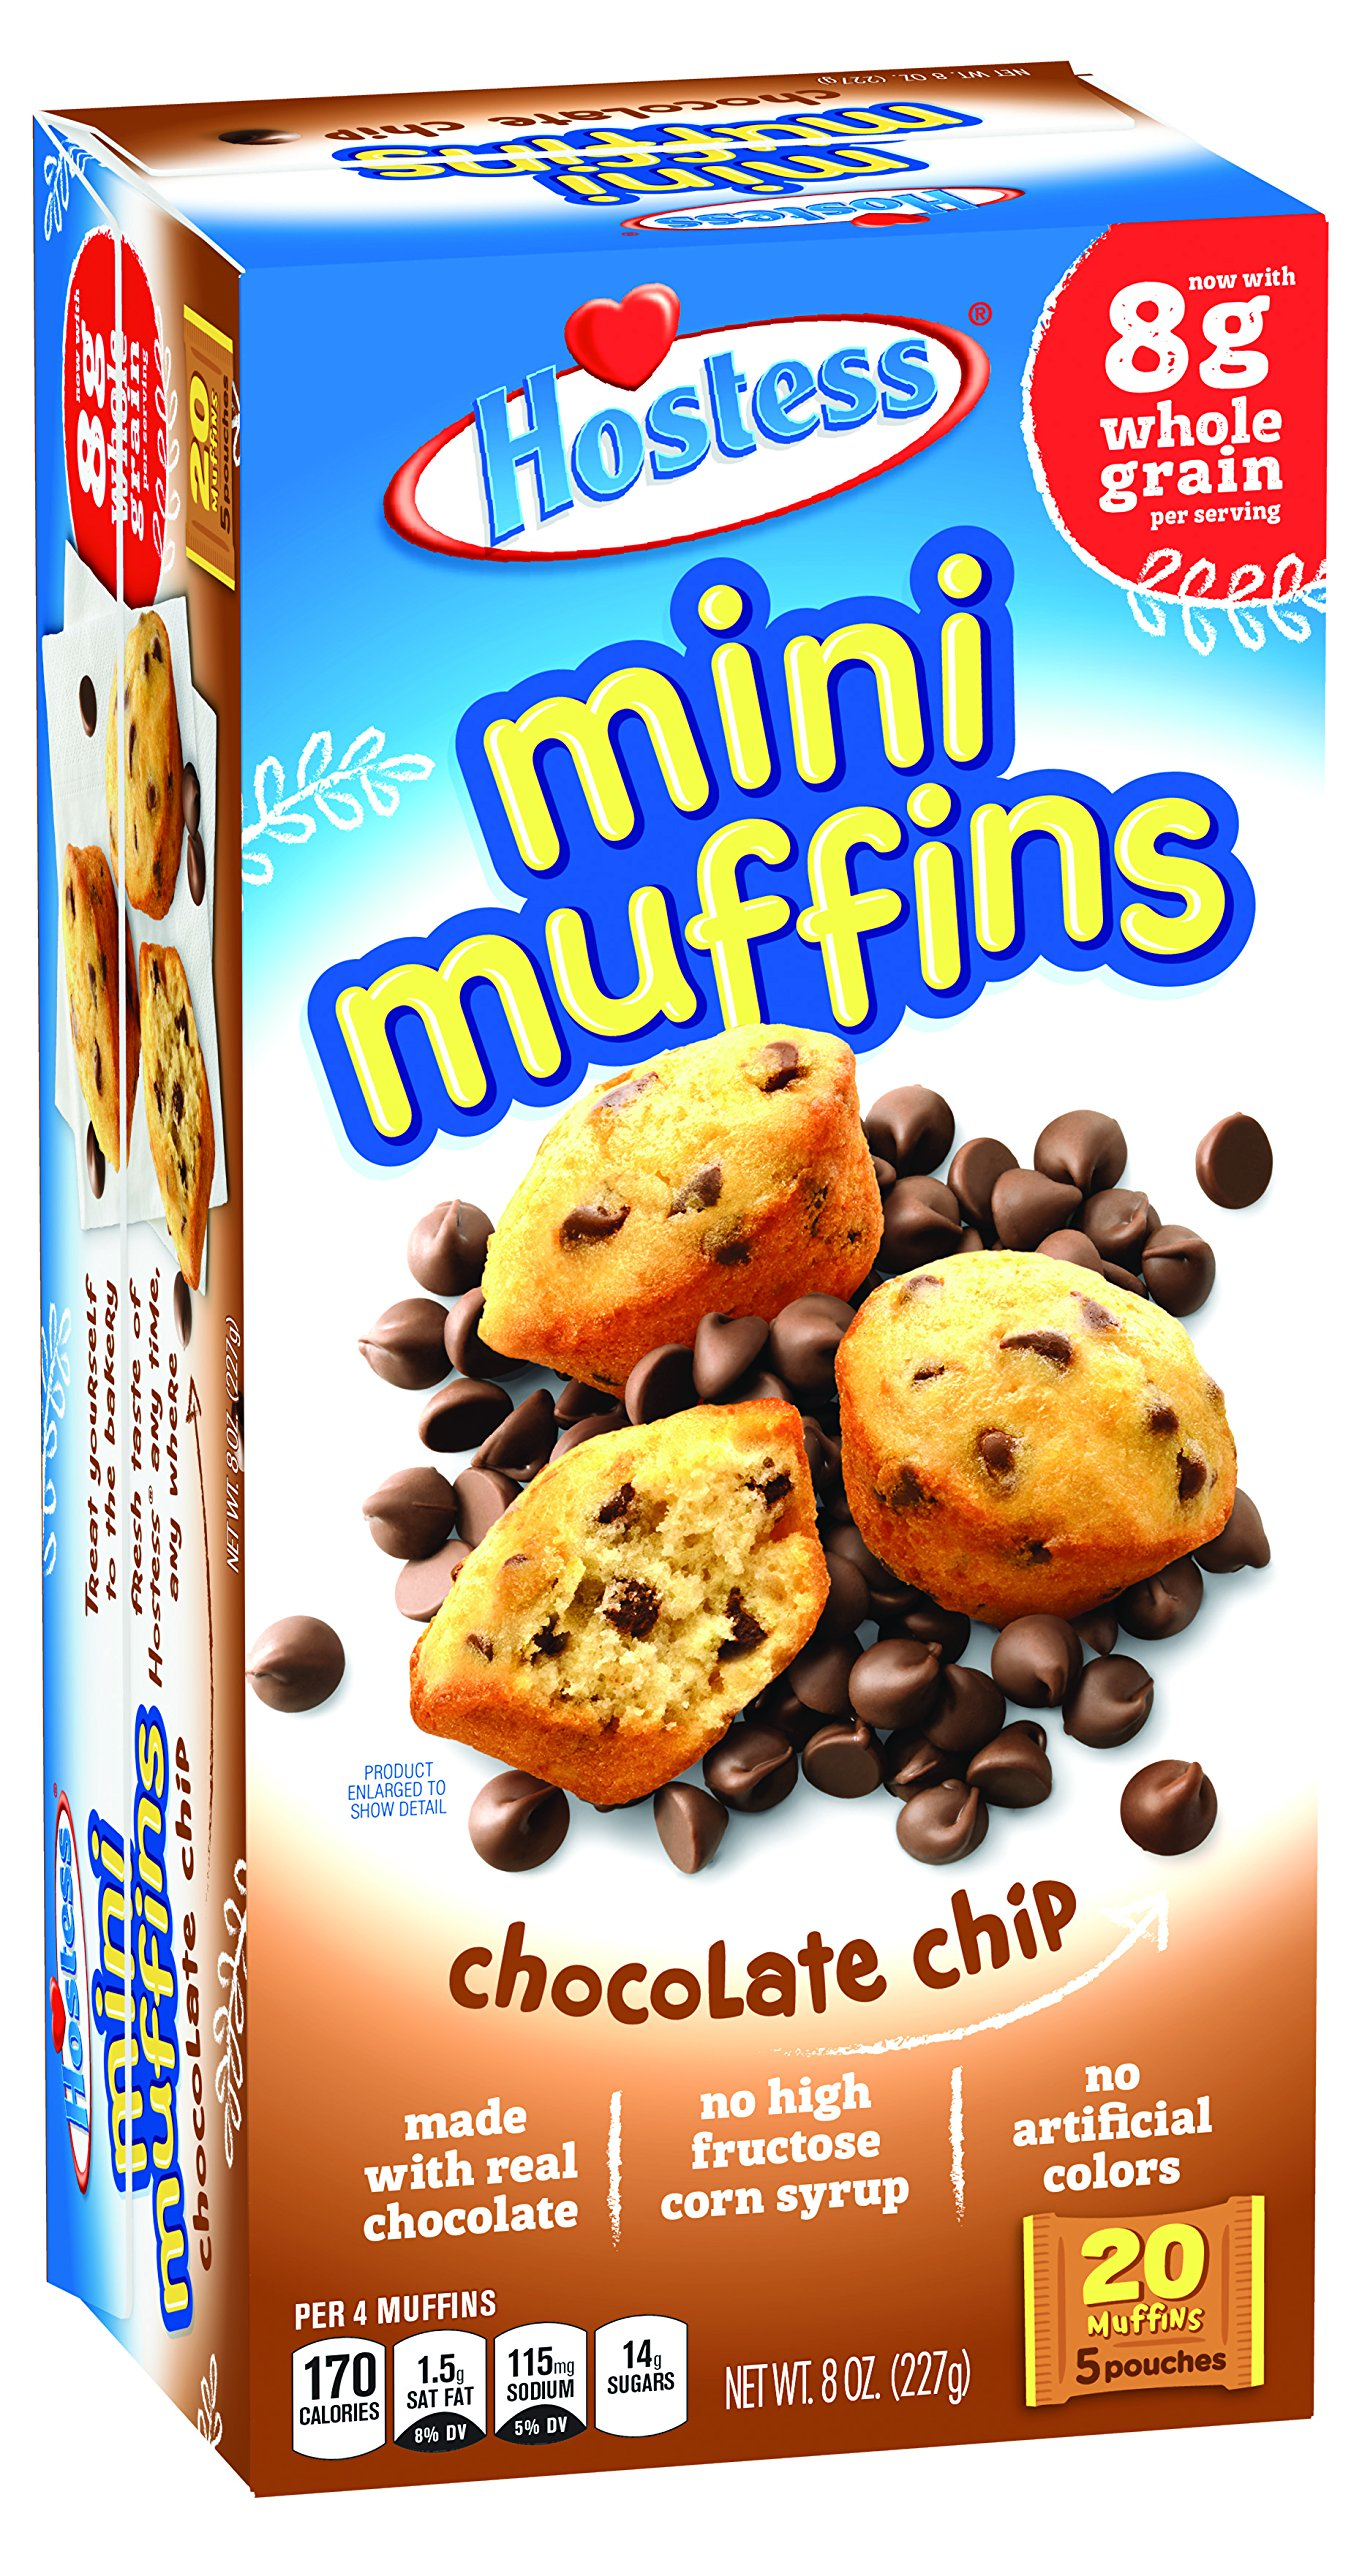 Hostess Mini Muffins, Chocolate Chip, 20 Count, 8 OZ (Pack of 6) by Hostess